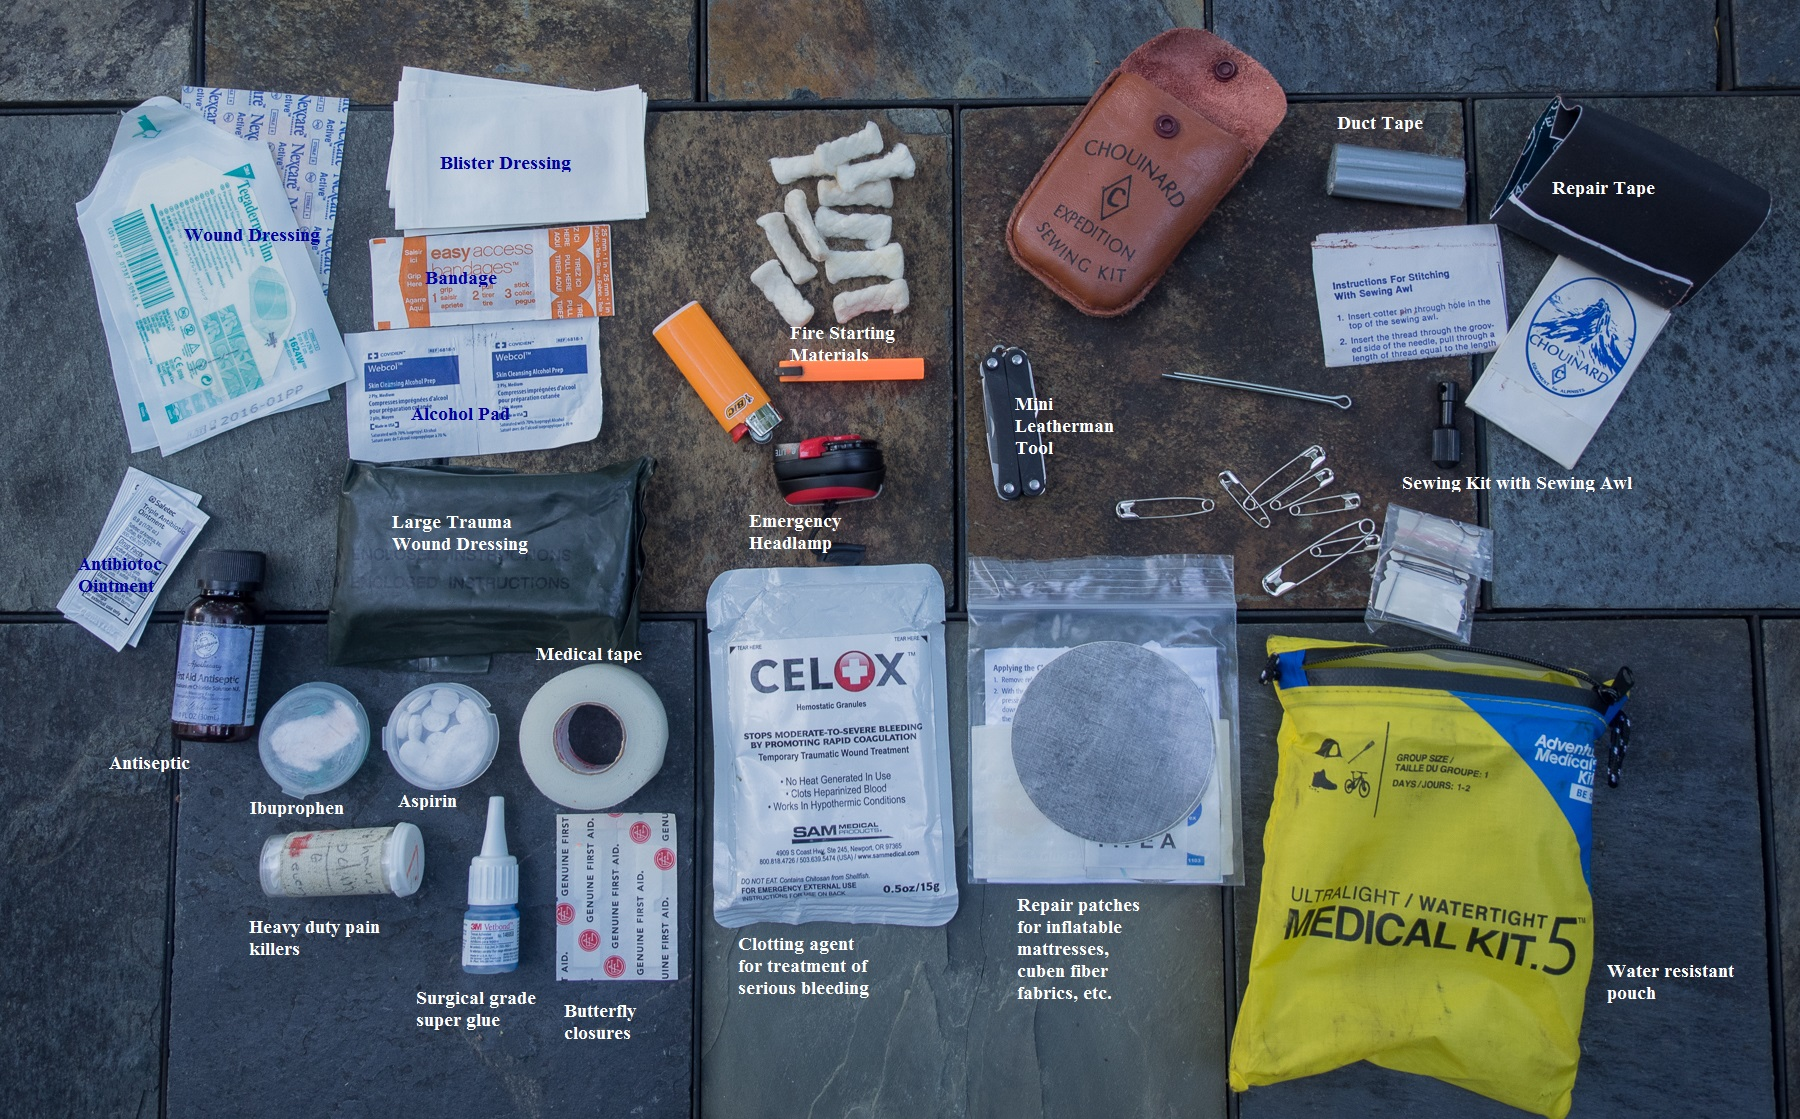 First aid/emergency kit, with contents labeled.